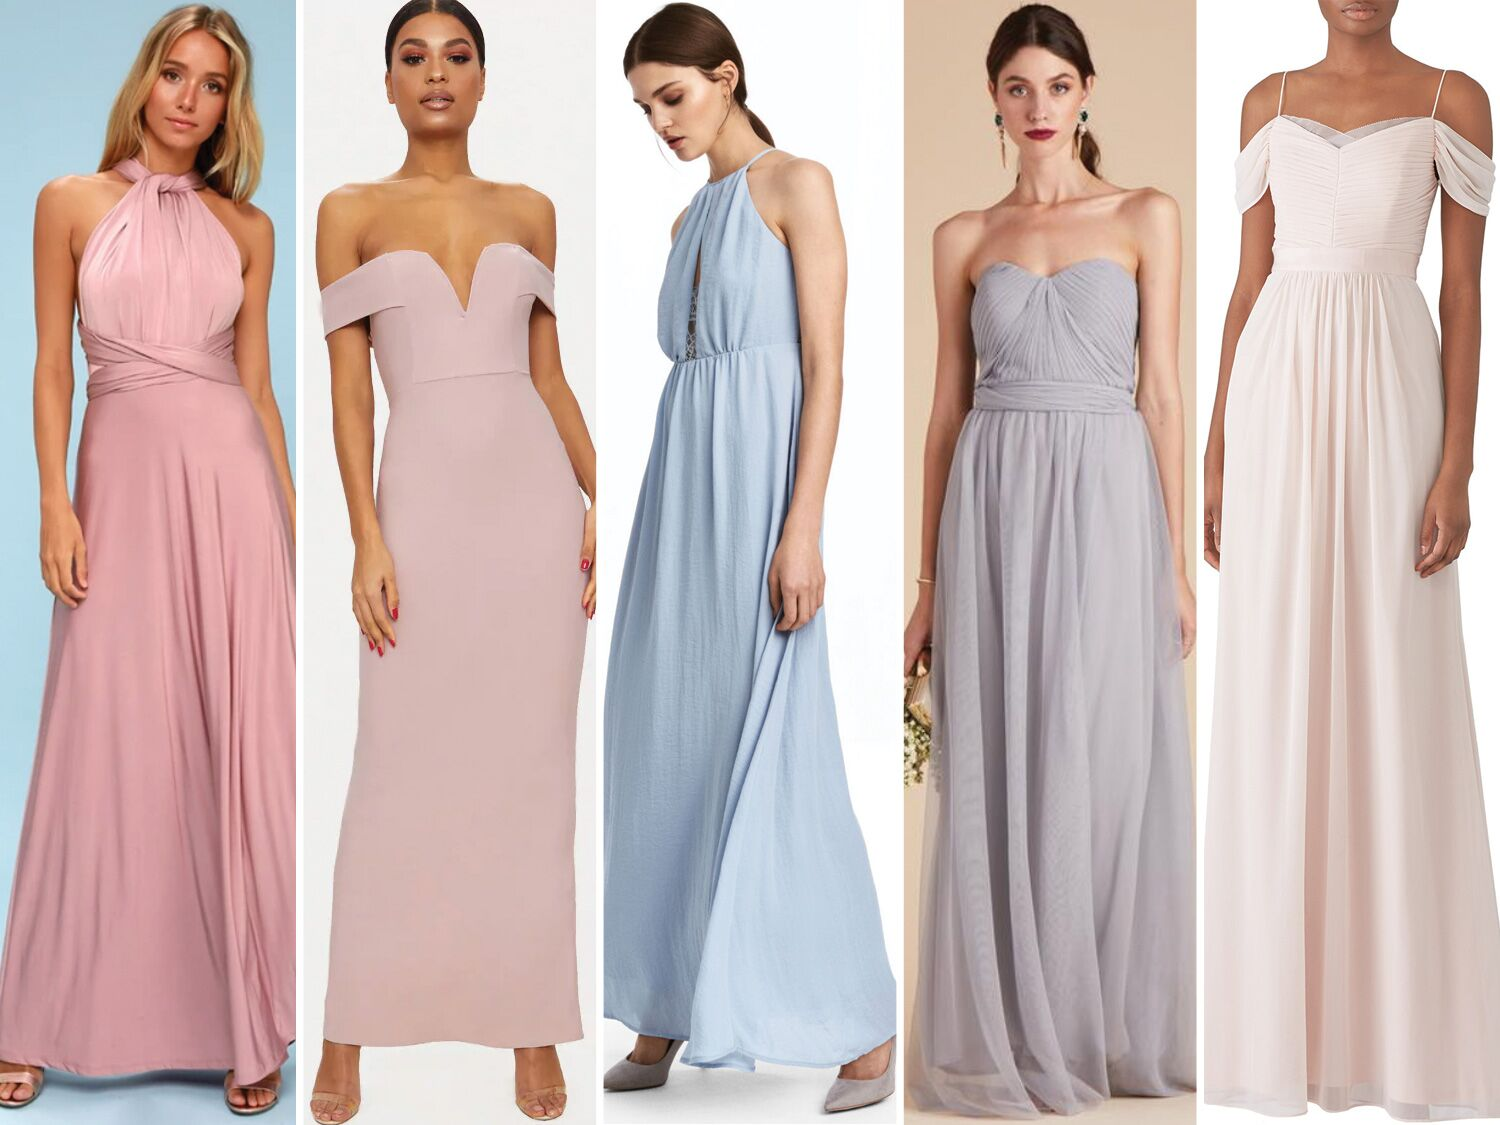 219d2b053f397 55 Affordable Bridesmaid Dresses That Don t Look Cheap